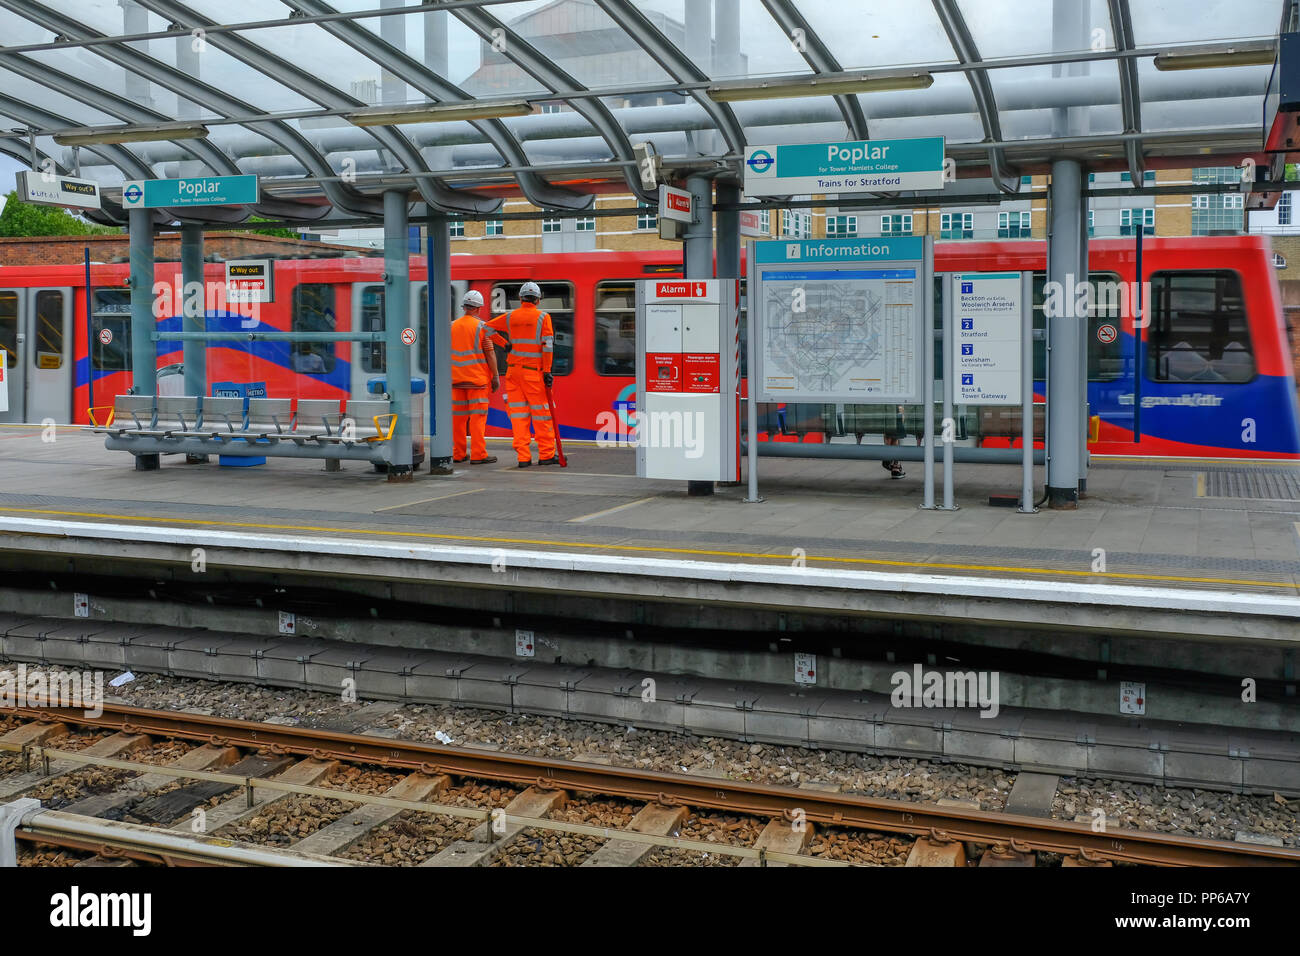 Poplar, London, UK - August 18, 2018: Two workmen dressed in high viz uniform in orange. Shows the workment on the DLR platform as a train pulls in. - Stock Image